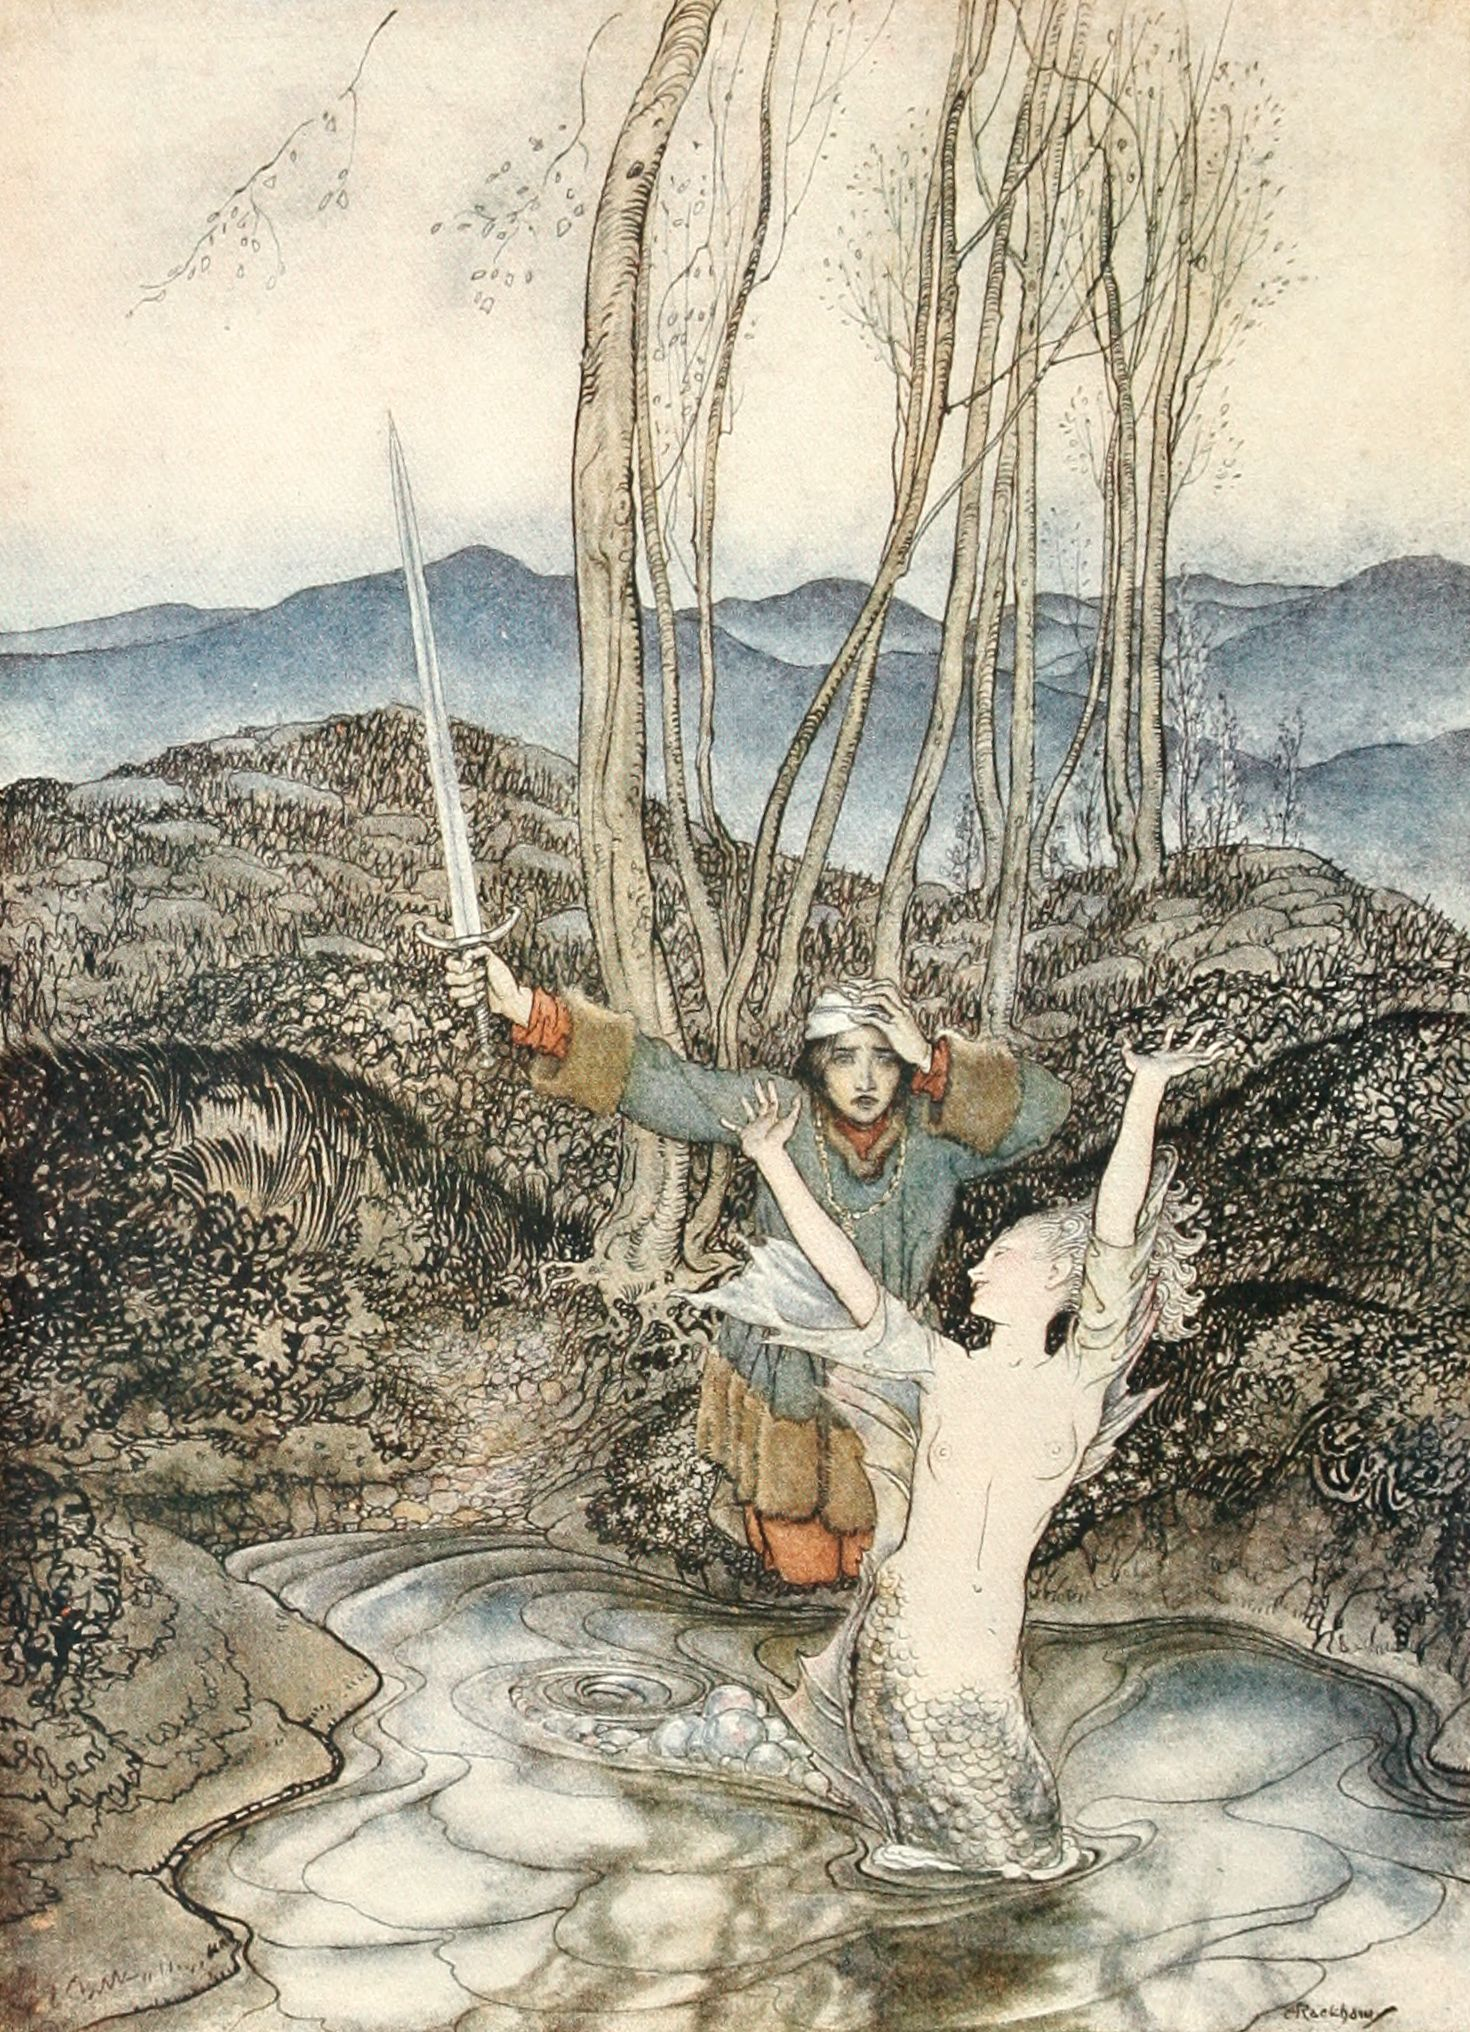 An Image Of Clerk Colvill And The Mermaid By Arthur Rackham In 2020 Arthur Rackham Mermaid Art Art